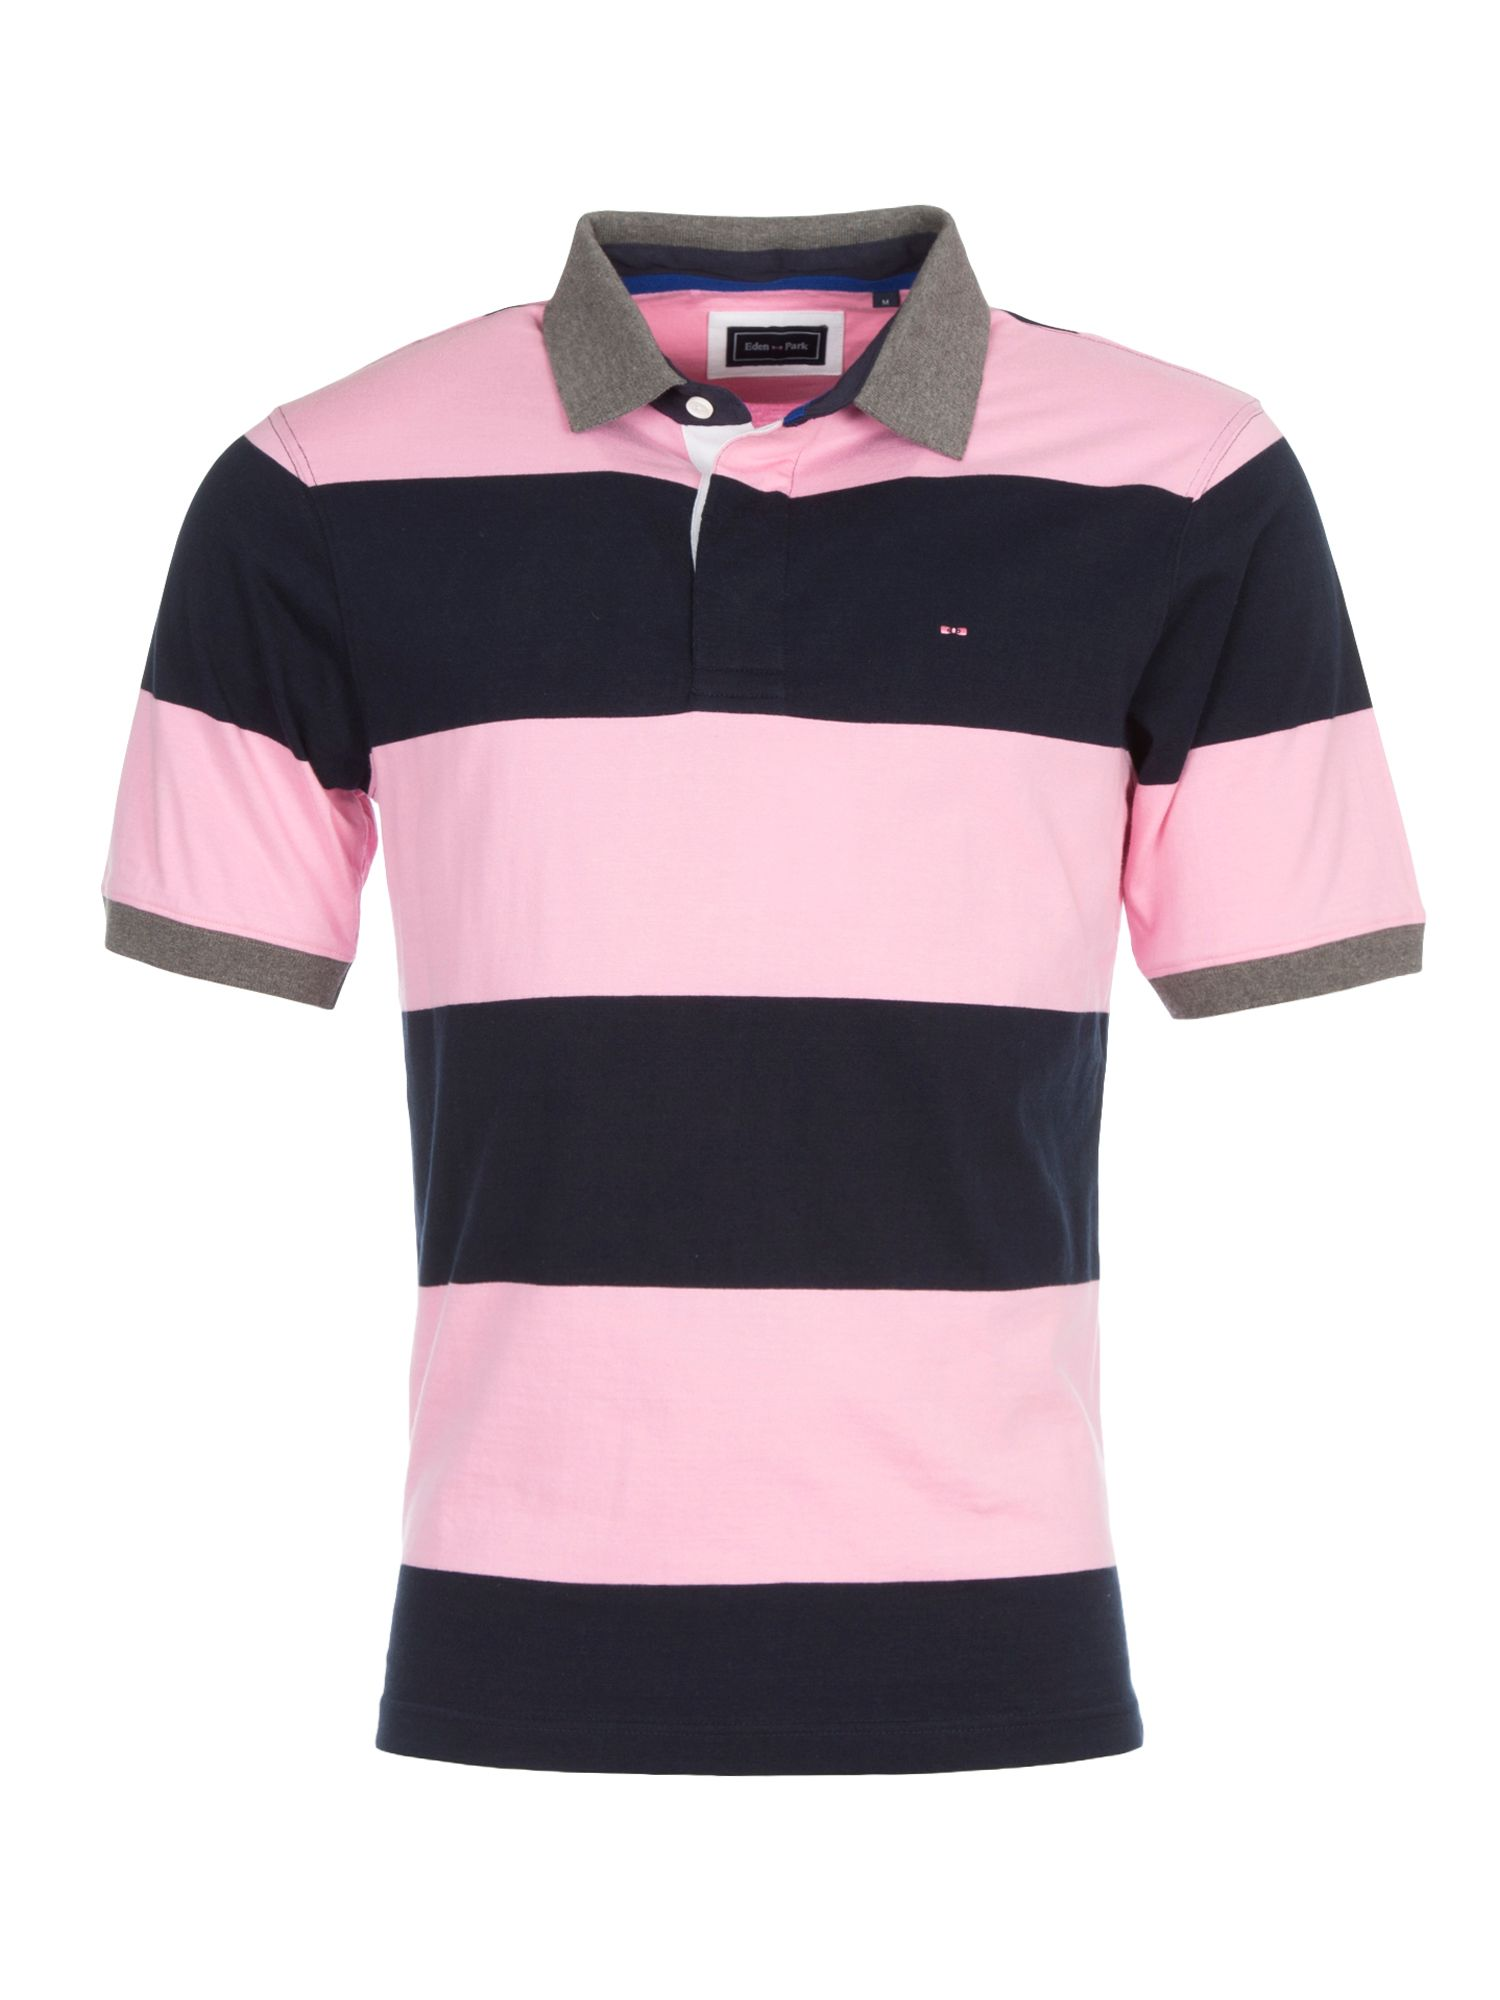 Men's Eden Park Striped Polo Shirt, Pink